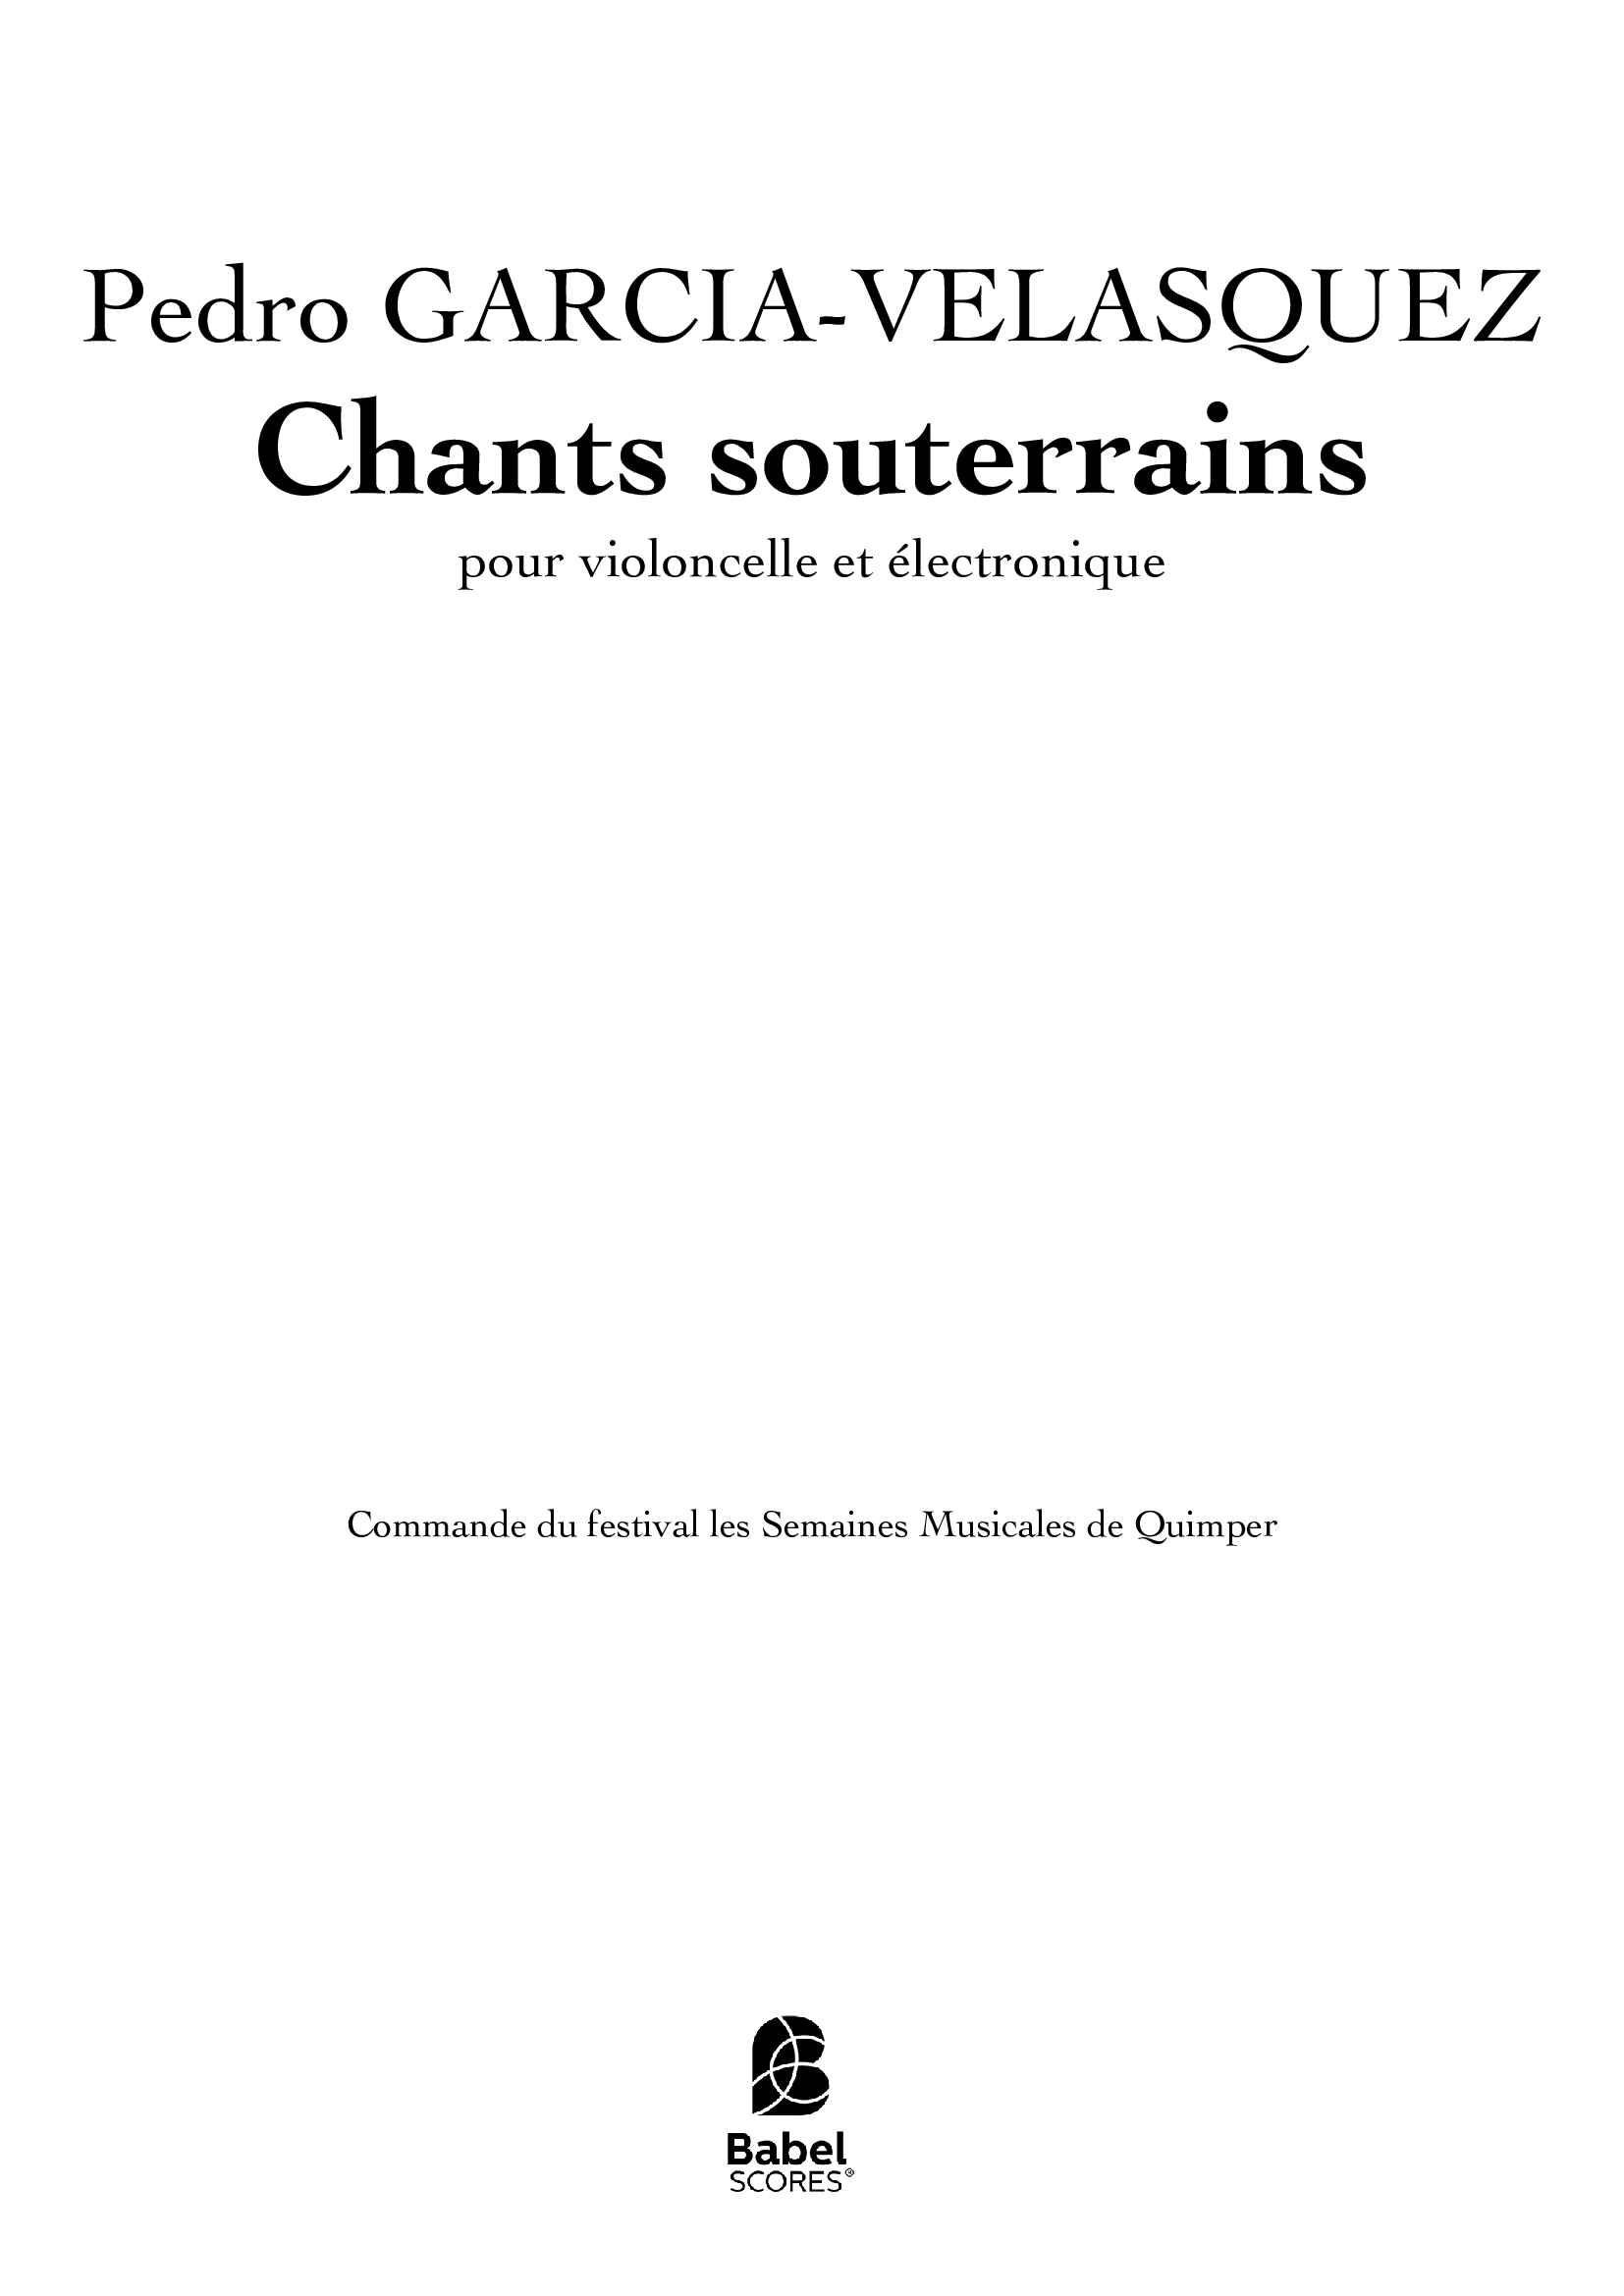 ChantsSouterrains1_v1 29 aout 1